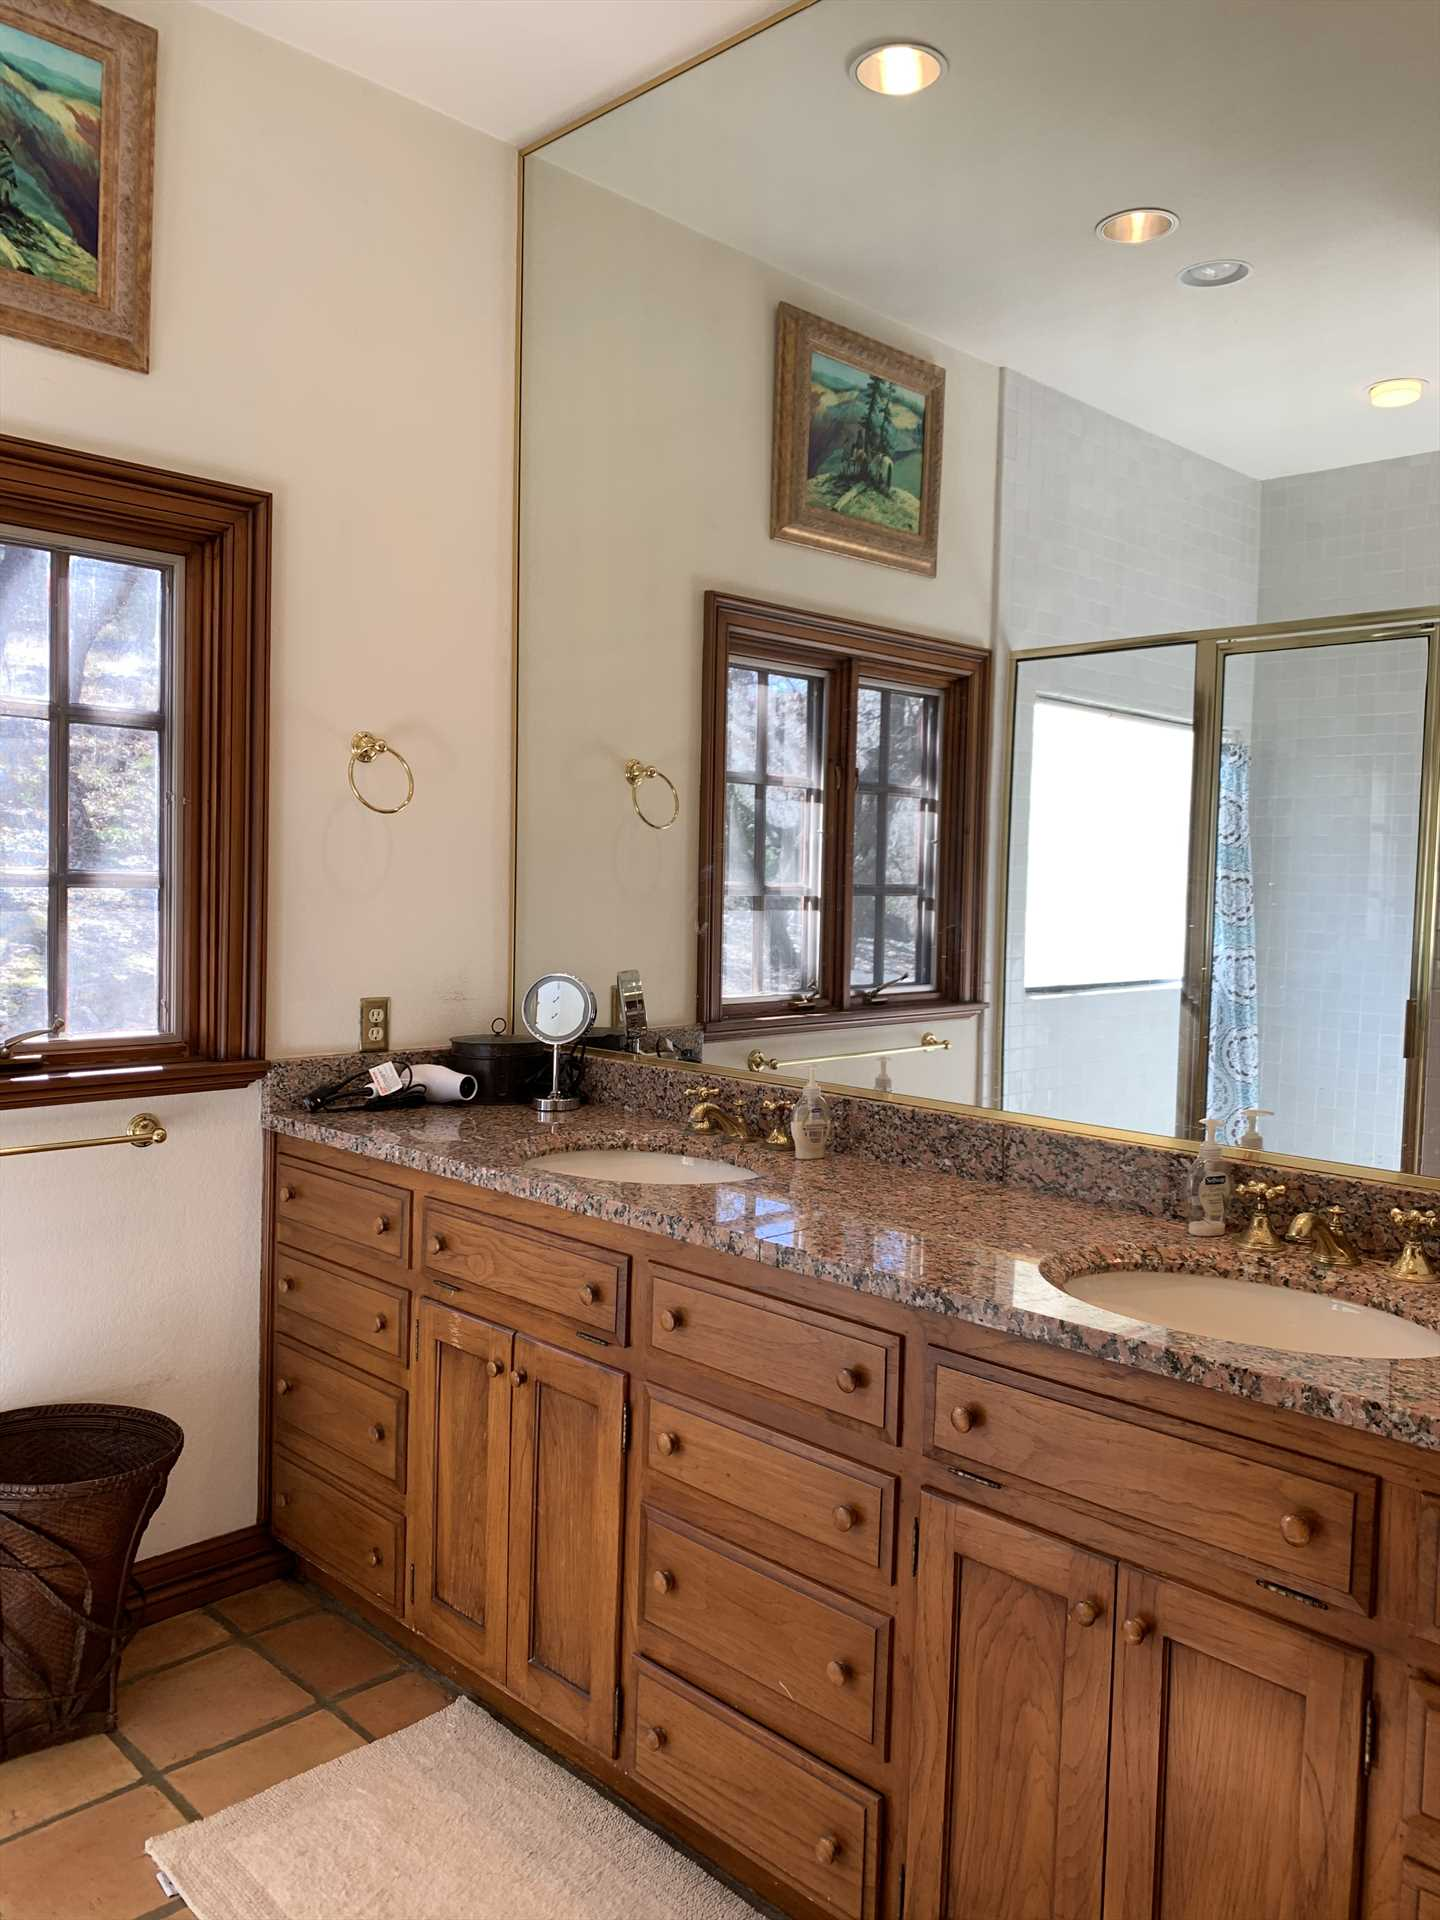 A giant, mirrored double vanity is in the second full bath, with plenty of counter space for your toiletries!